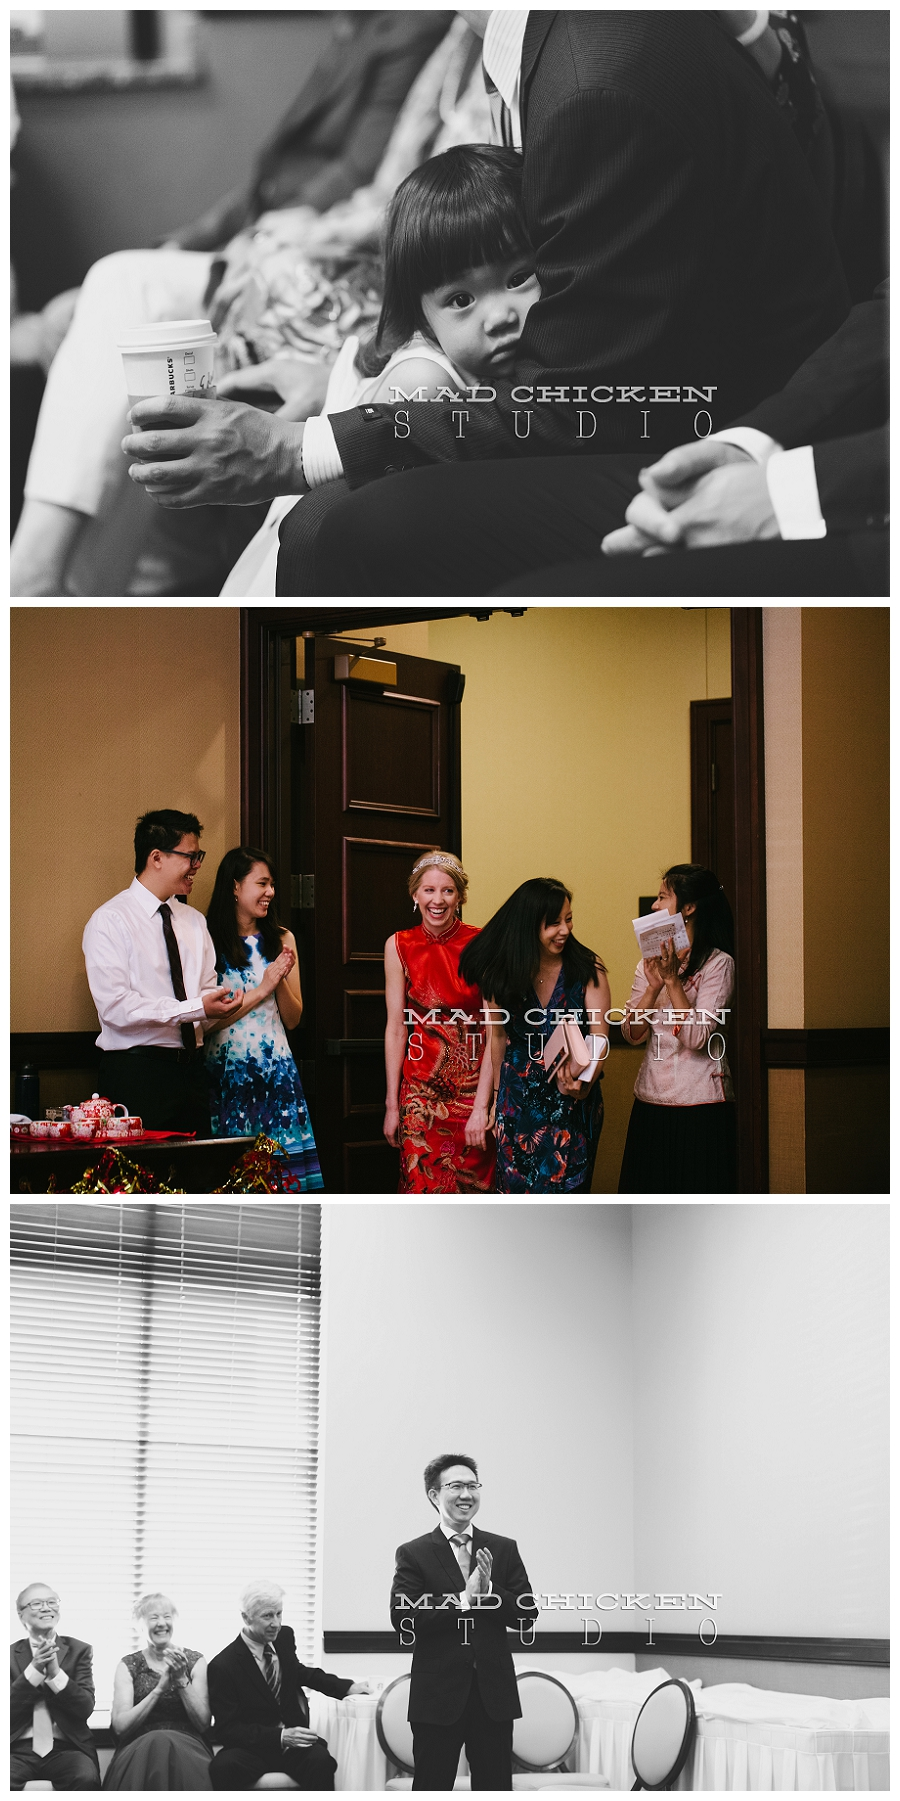 duluth wedding photographer | mad chicken studio | Darrick and Laura Tea Ceremony at the Sheraton Duluth